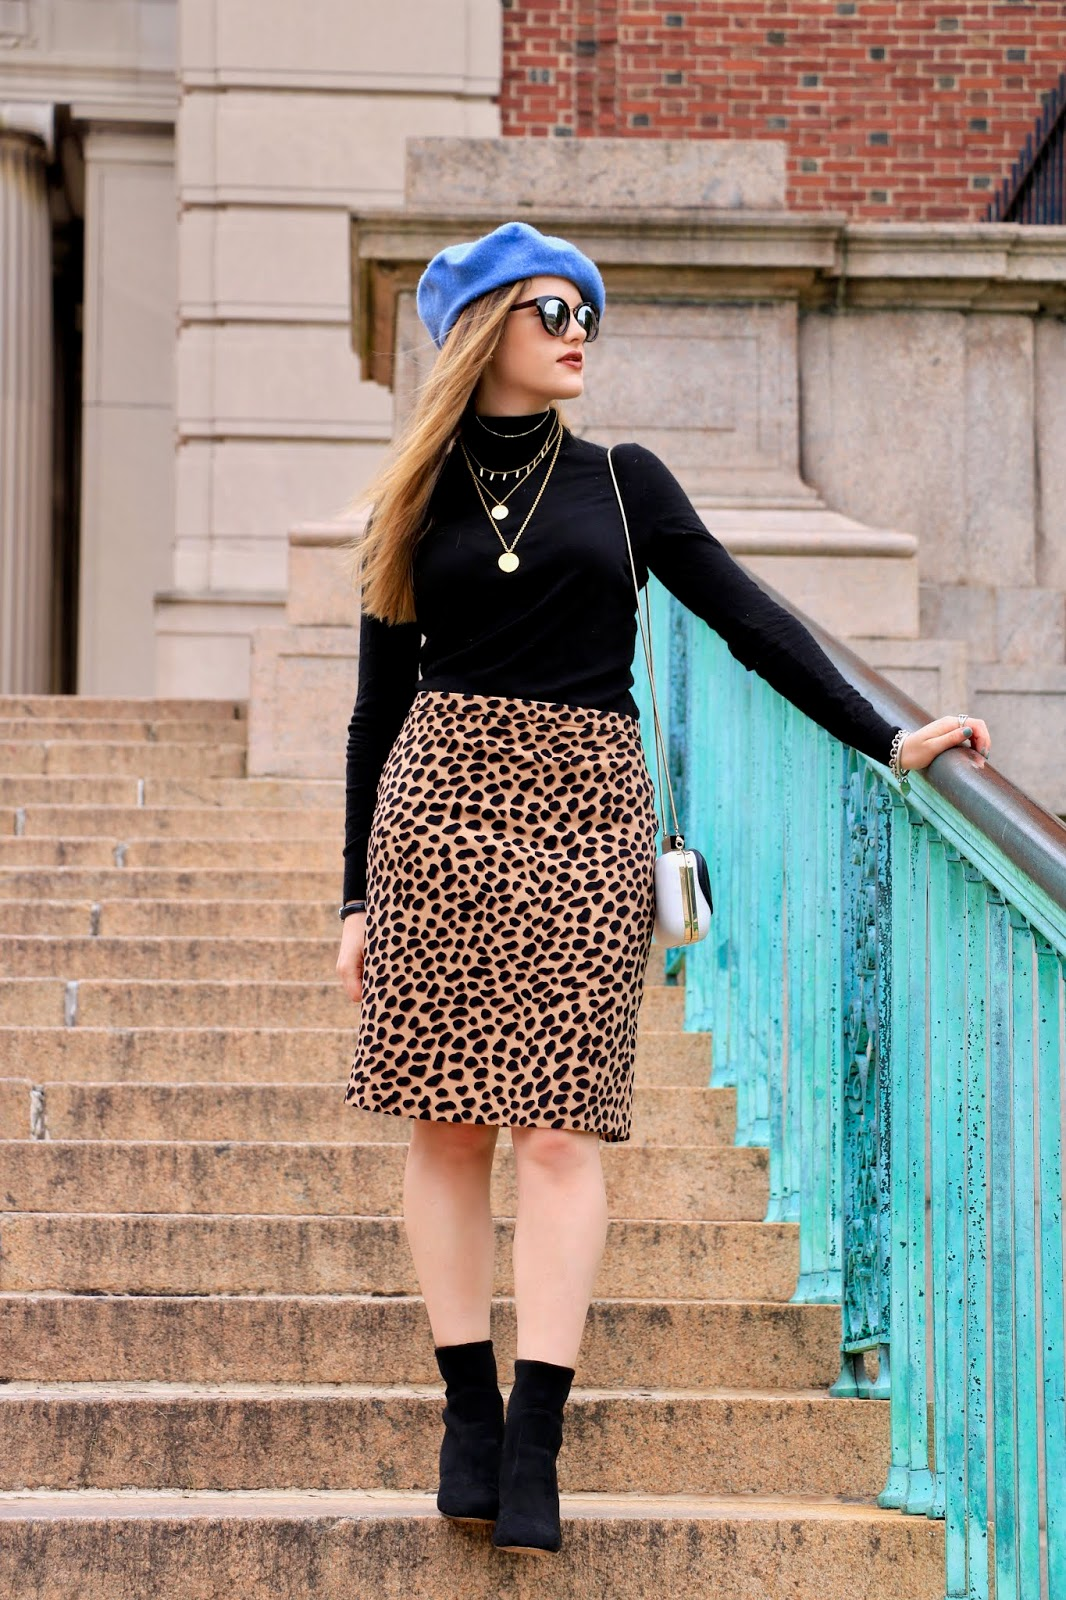 Nyc fashion blogger Kathleen Harper's leopard skirt outfit ideas